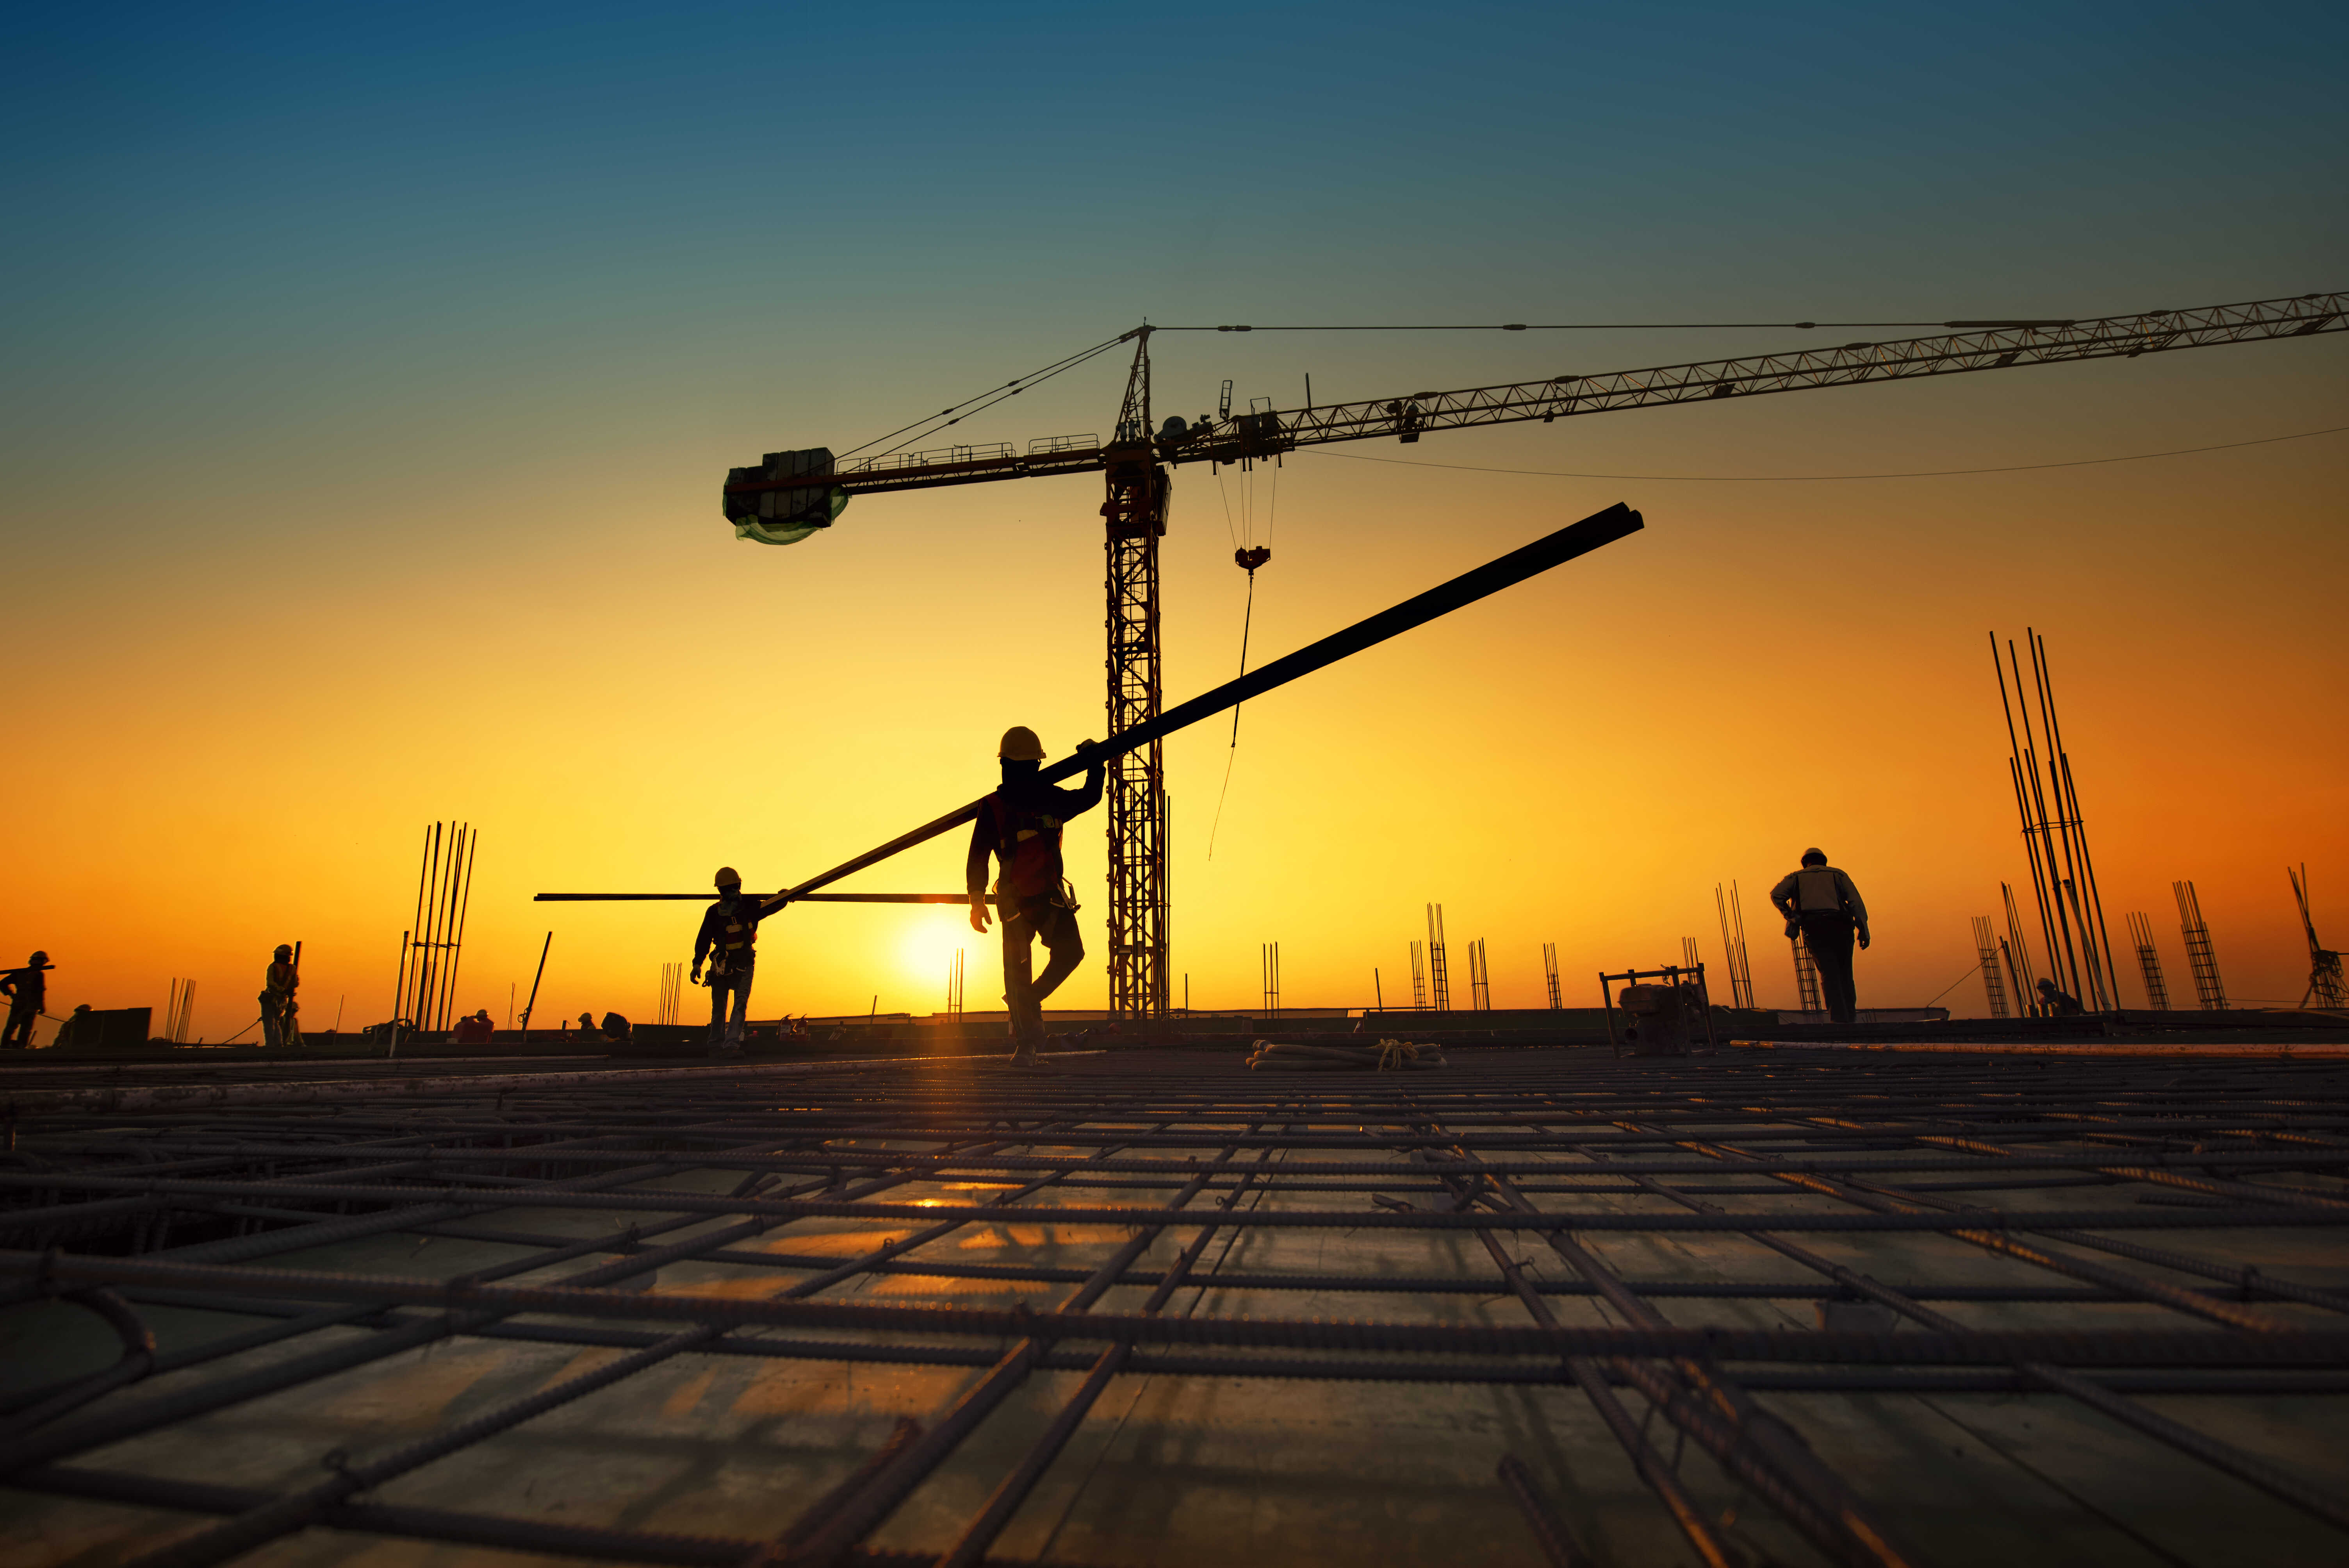 silhouette-construction-workers-fabricating-steel-reinforcement-bar-construction-si (1).jpg